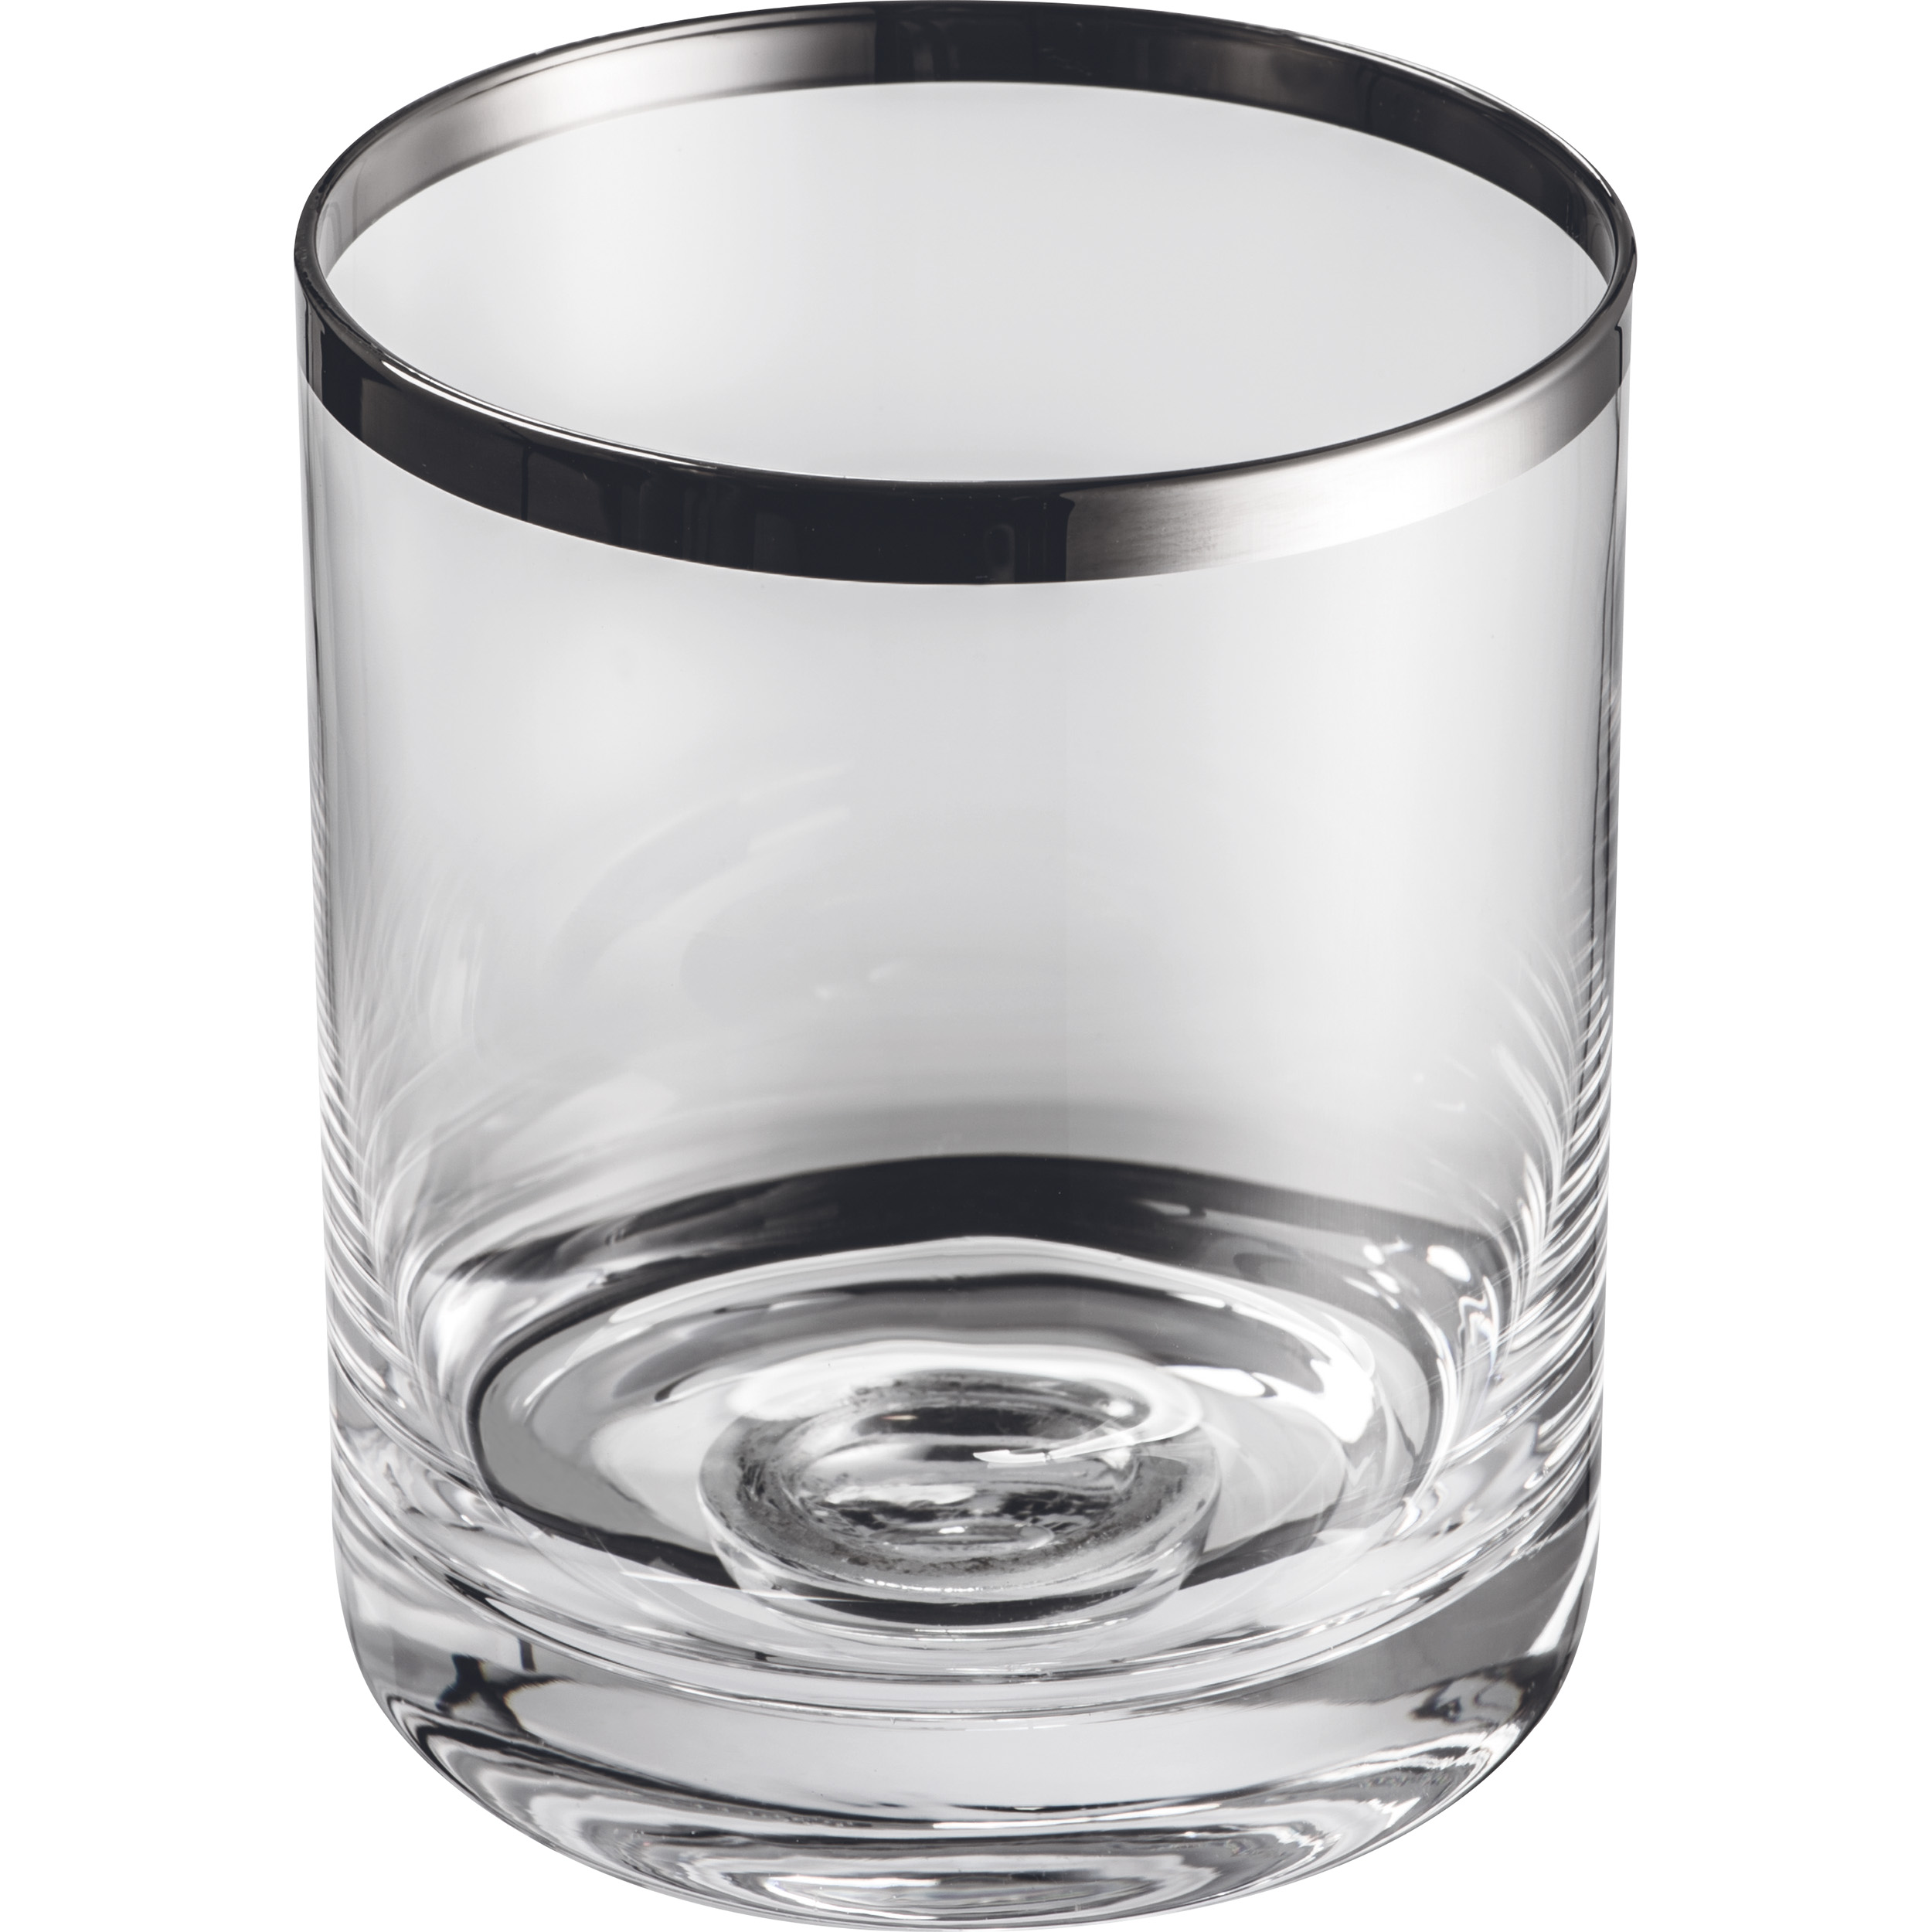 Set of 6 whisky glasses